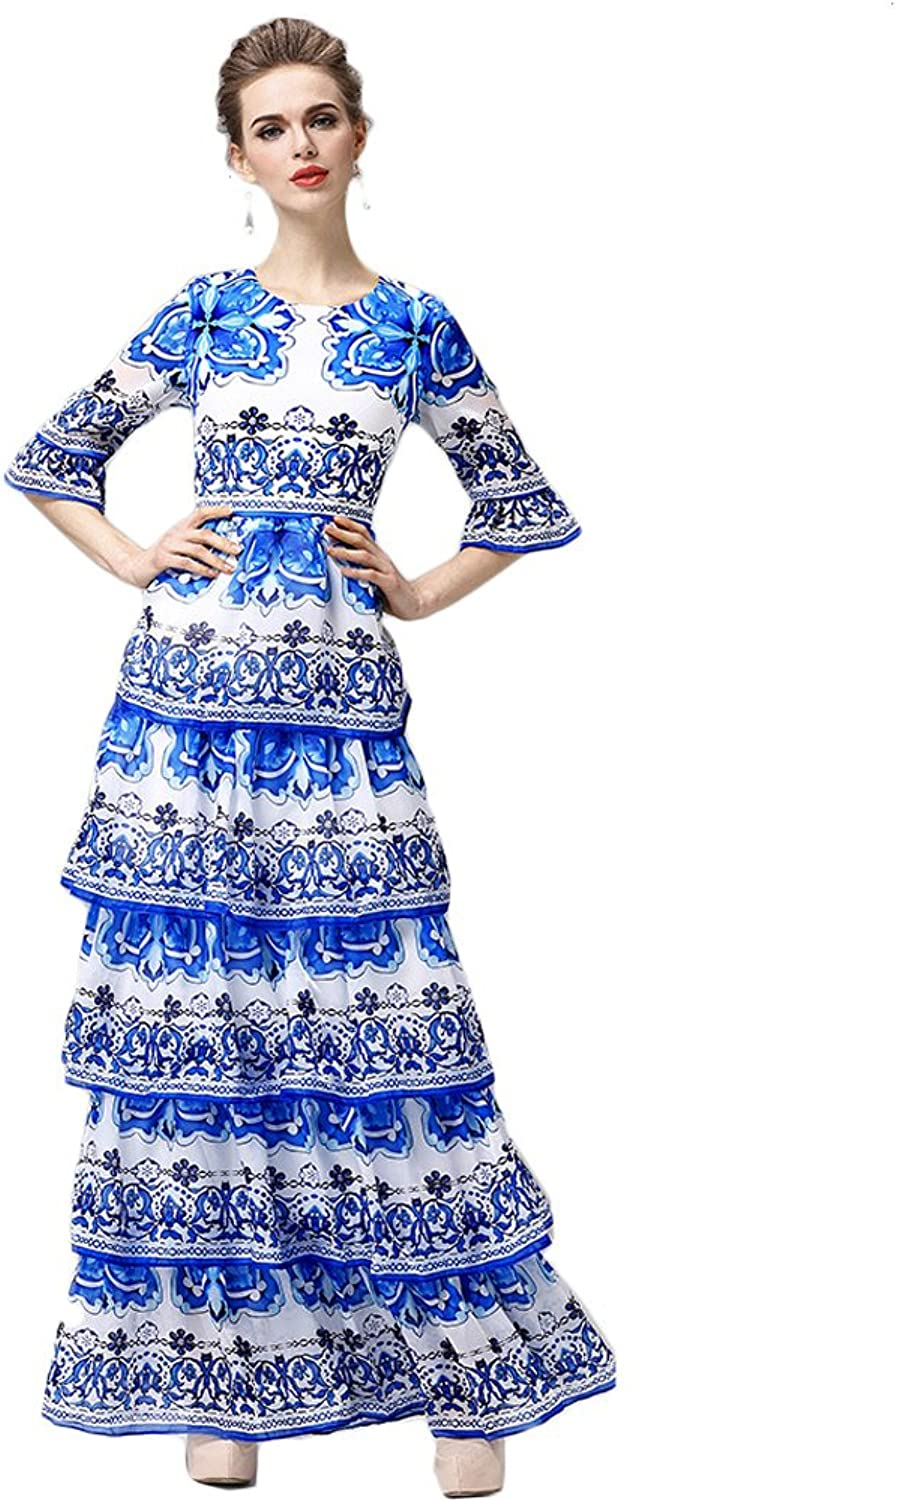 2017 Spring Summer Fashion Elegant 3 4 Sleeve ONeck bluee Flowers Print Cultivate Women Layed Cake Long Dress